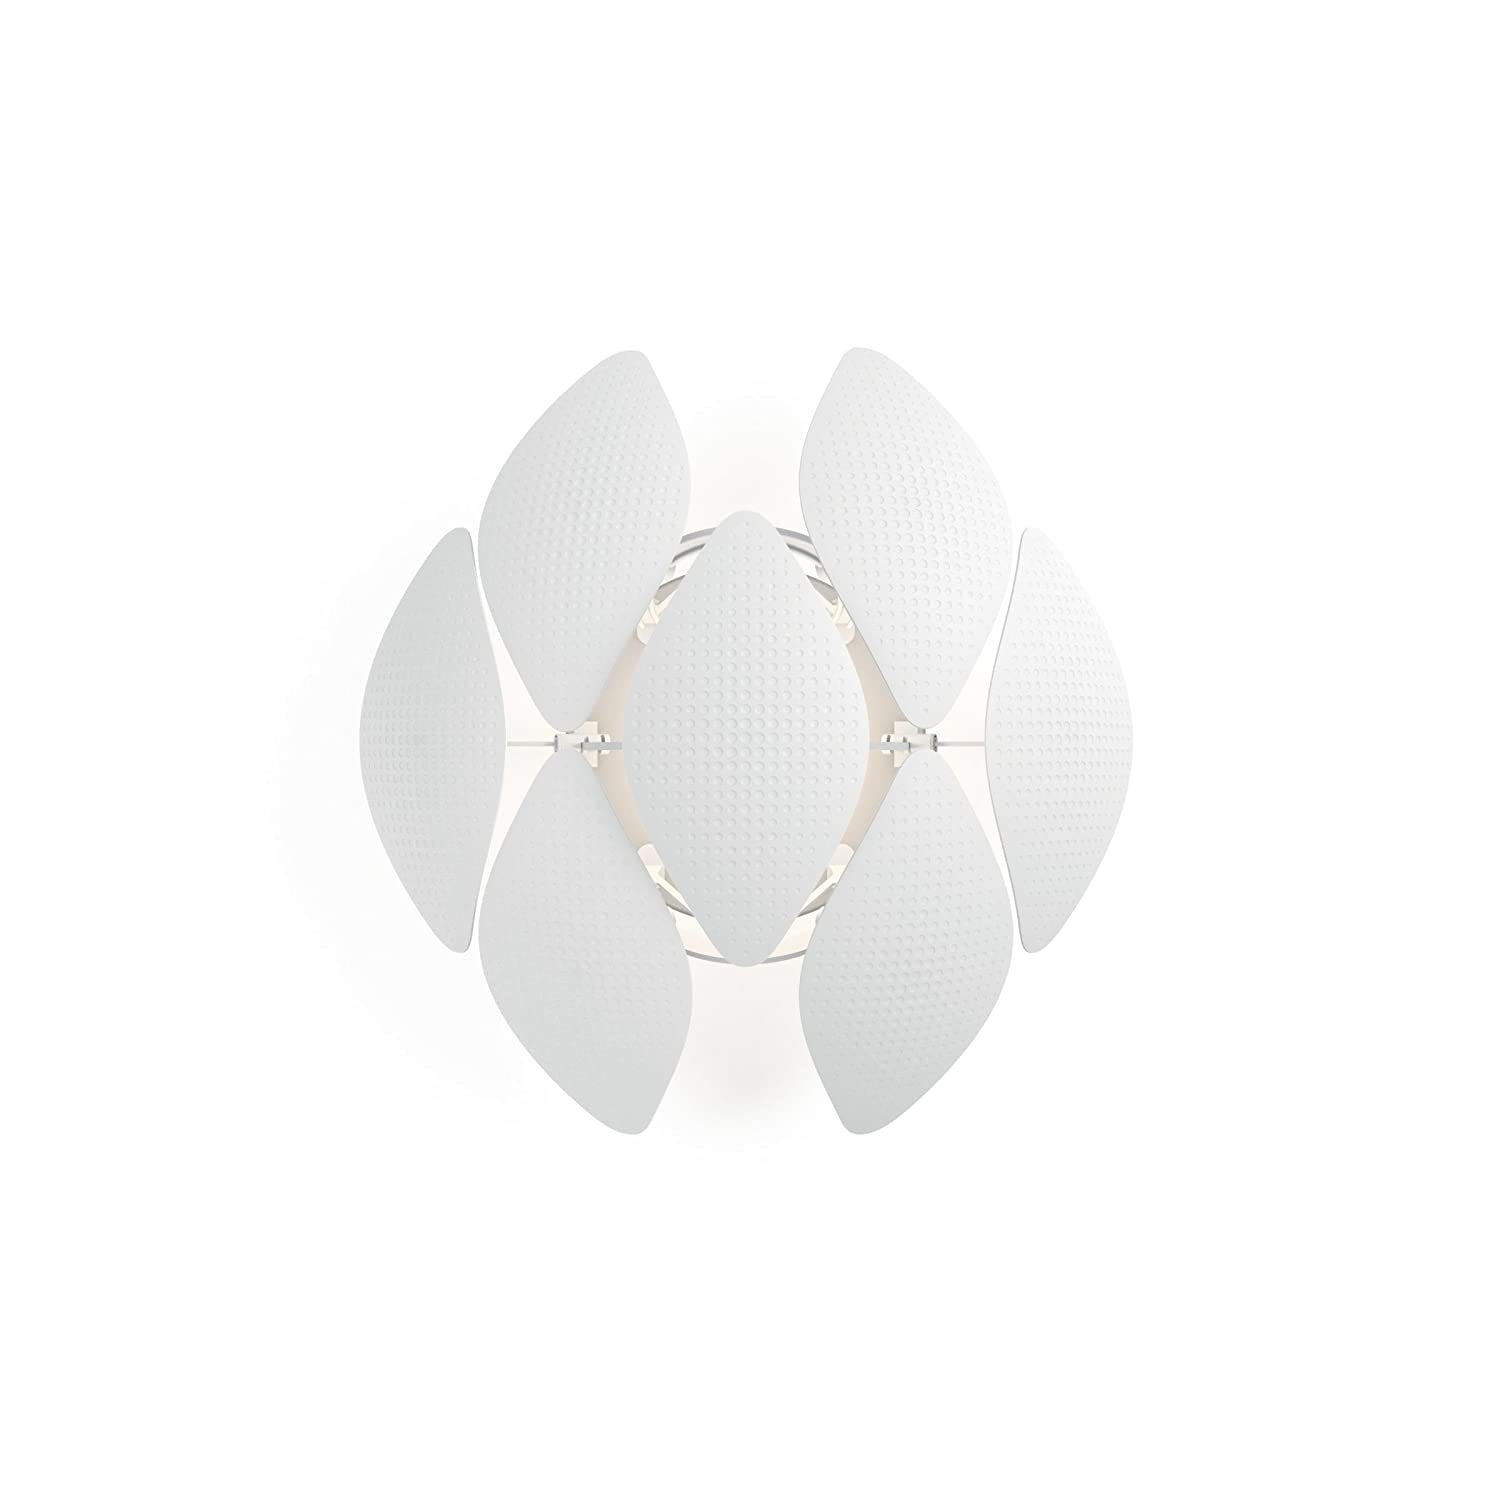 / Lamp Brushed, Bedroom, Living Room, Indoor, White, Plastic, IP20 Philips MyLiving 4096331pn/